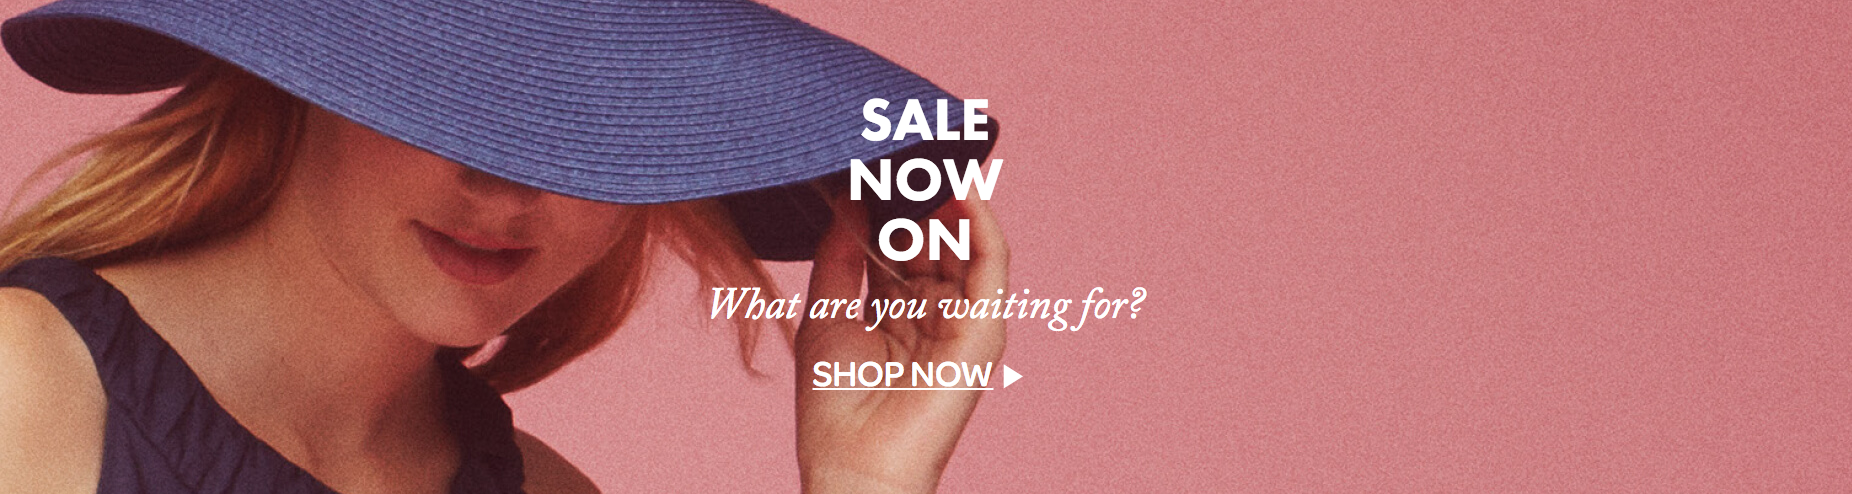 MAX&Co MAX&Co: Sale up to 30% off dresses, jackets, blouses